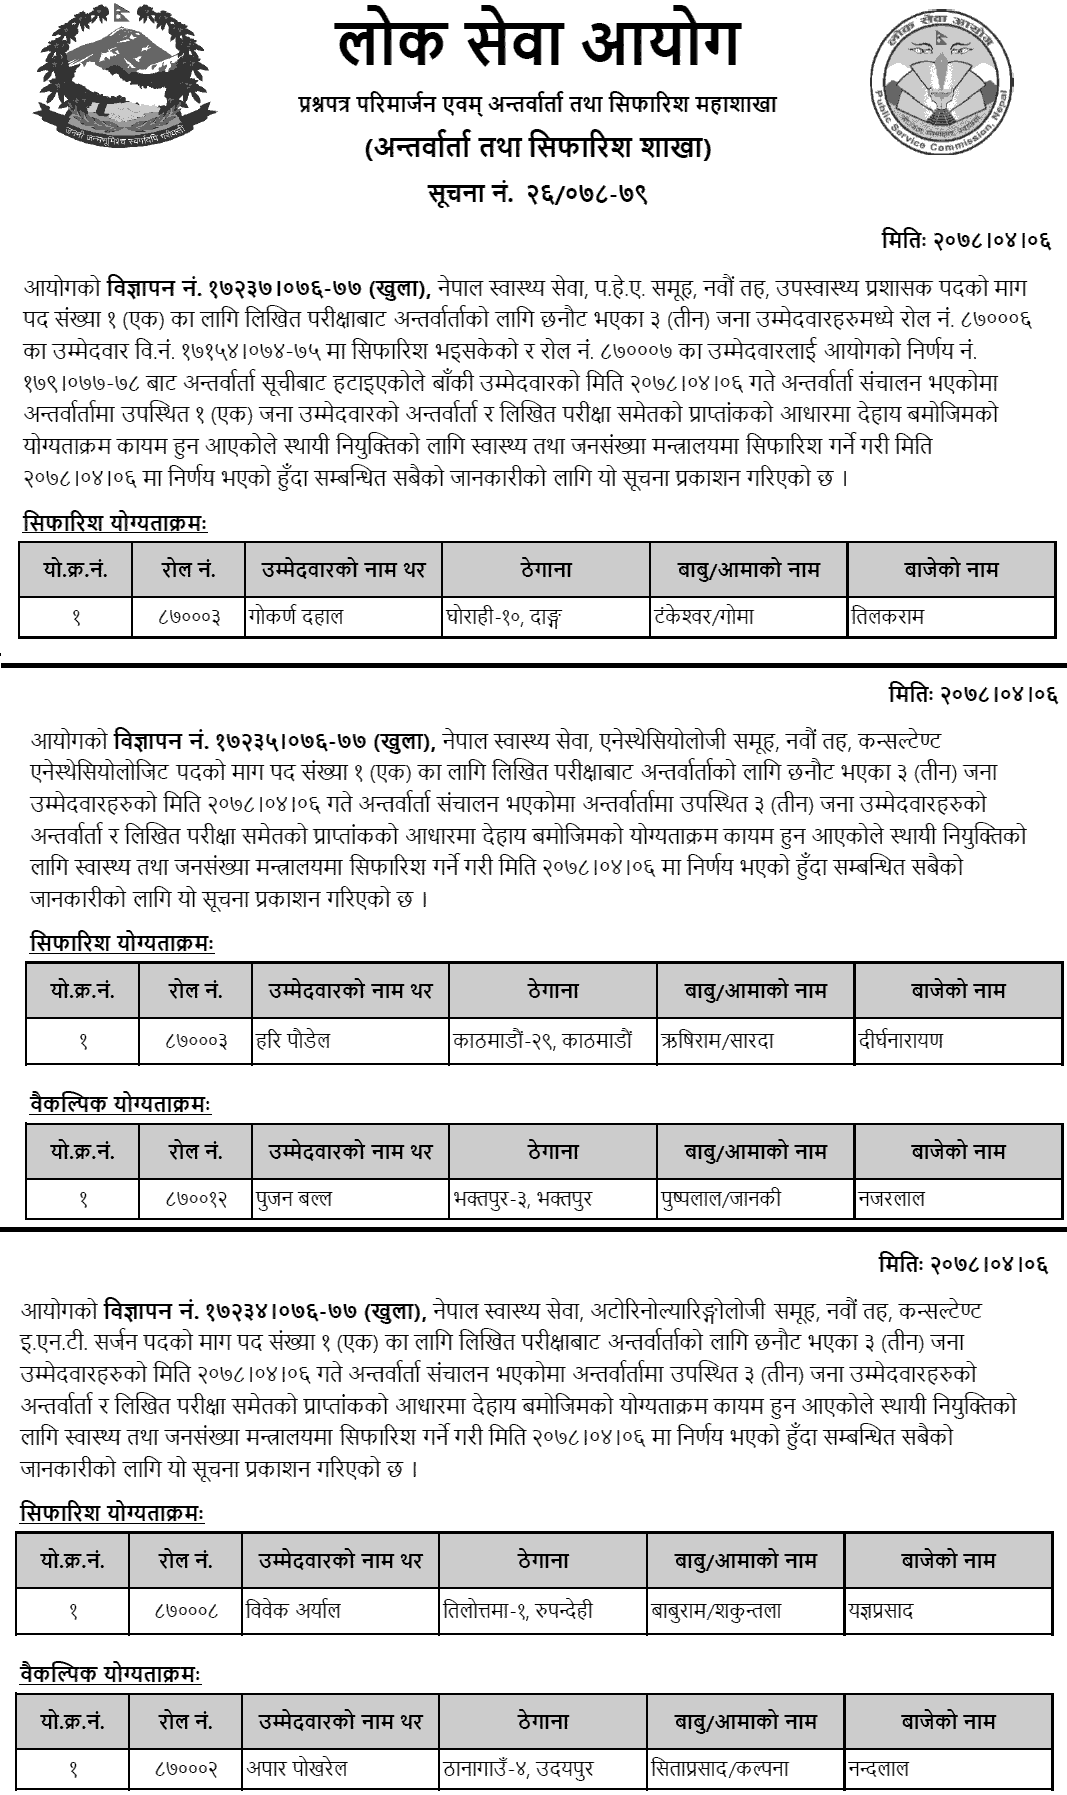 Lok Sewa Aayog Published Final Result and Recommendation of 9th Level Various Health Service